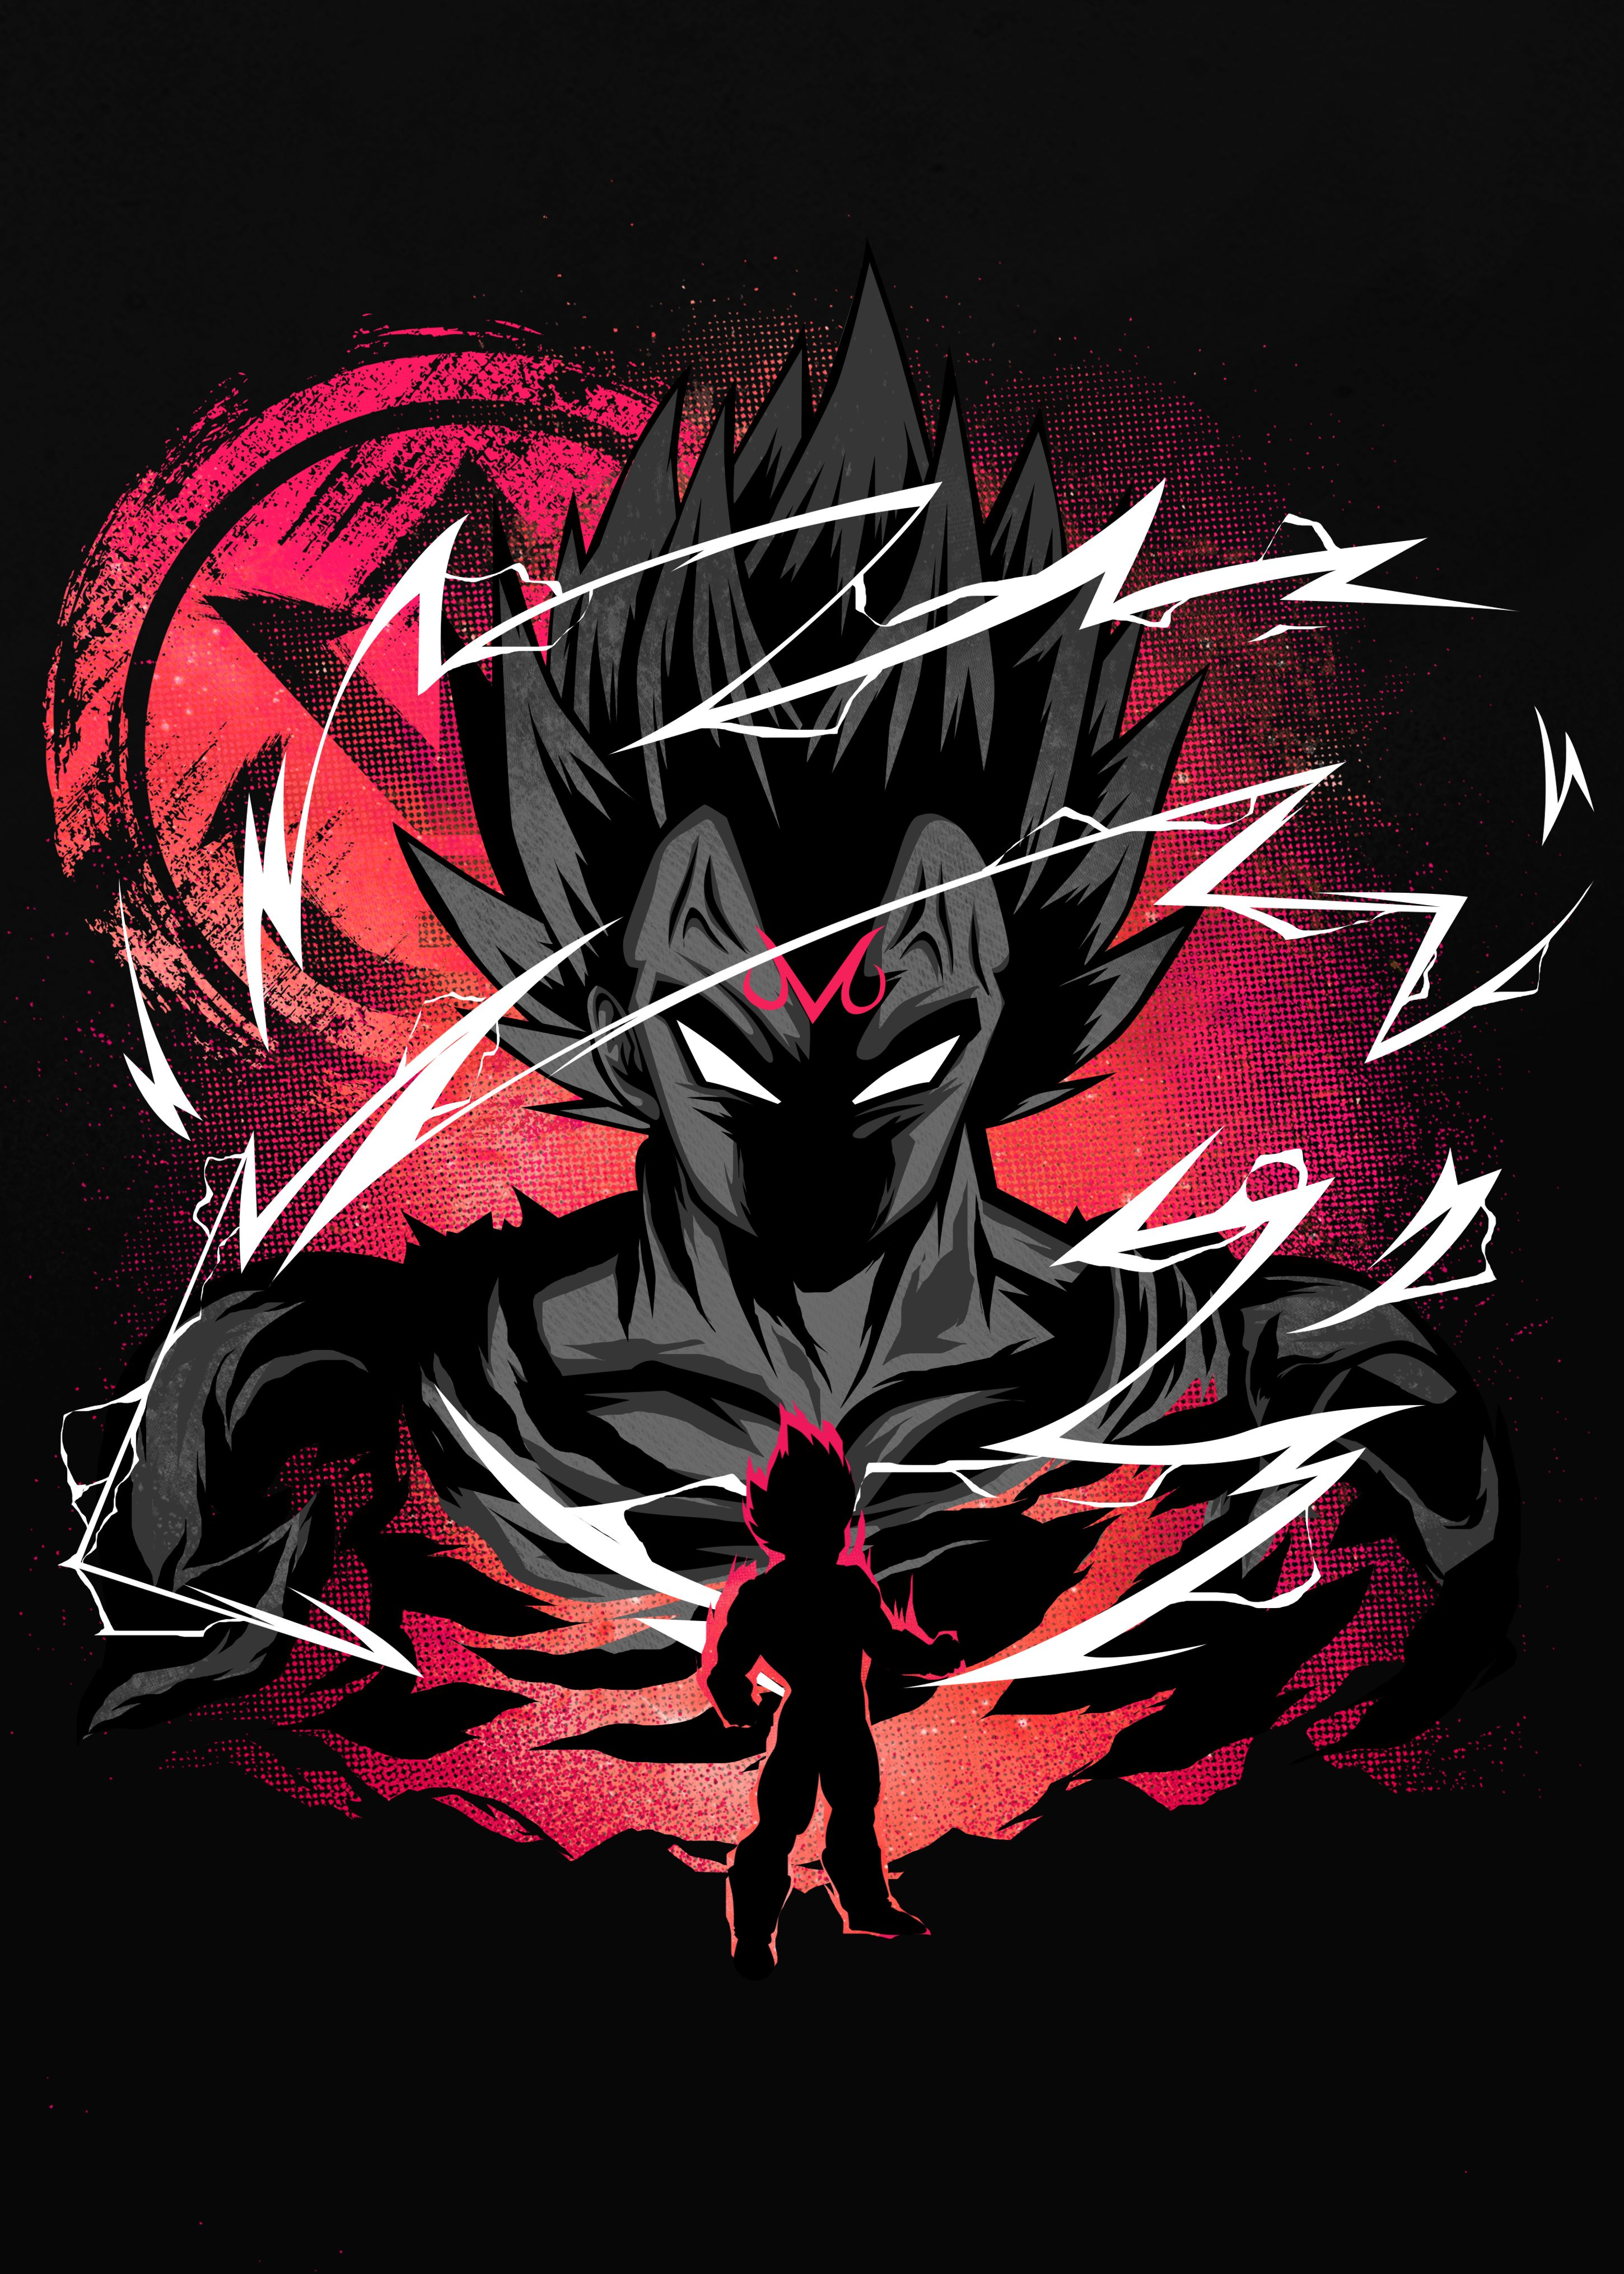 Inspired By The Greatest Fusion Dragonballz Vegeta Majinboo Dragon Ball Wallpapers Dragon Ball Super Manga Anime Dragon Ball Super